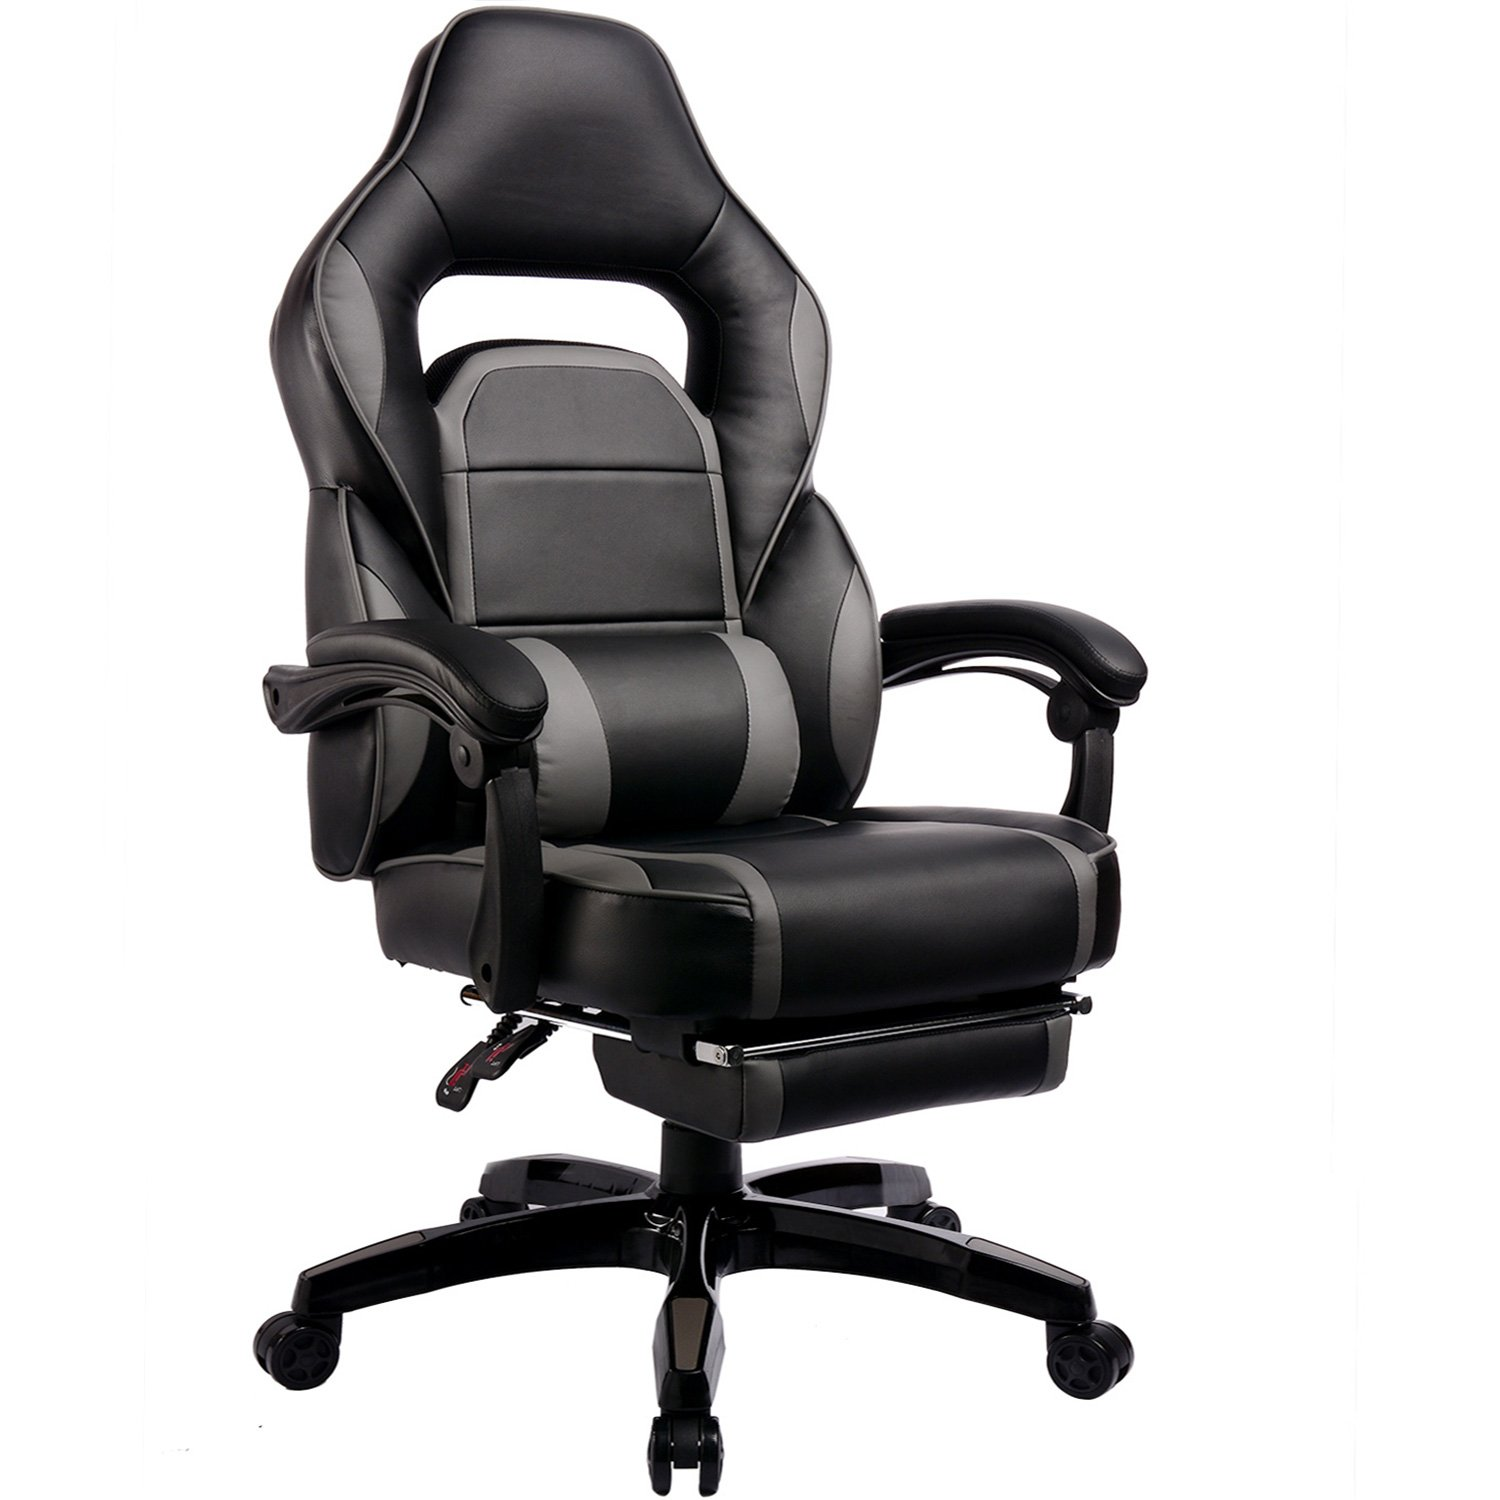 GTracing High Back Ergonomic Gaming Chair Racing Chair Napping Computer Office Chair With Padded Footrest , Black and GRAY